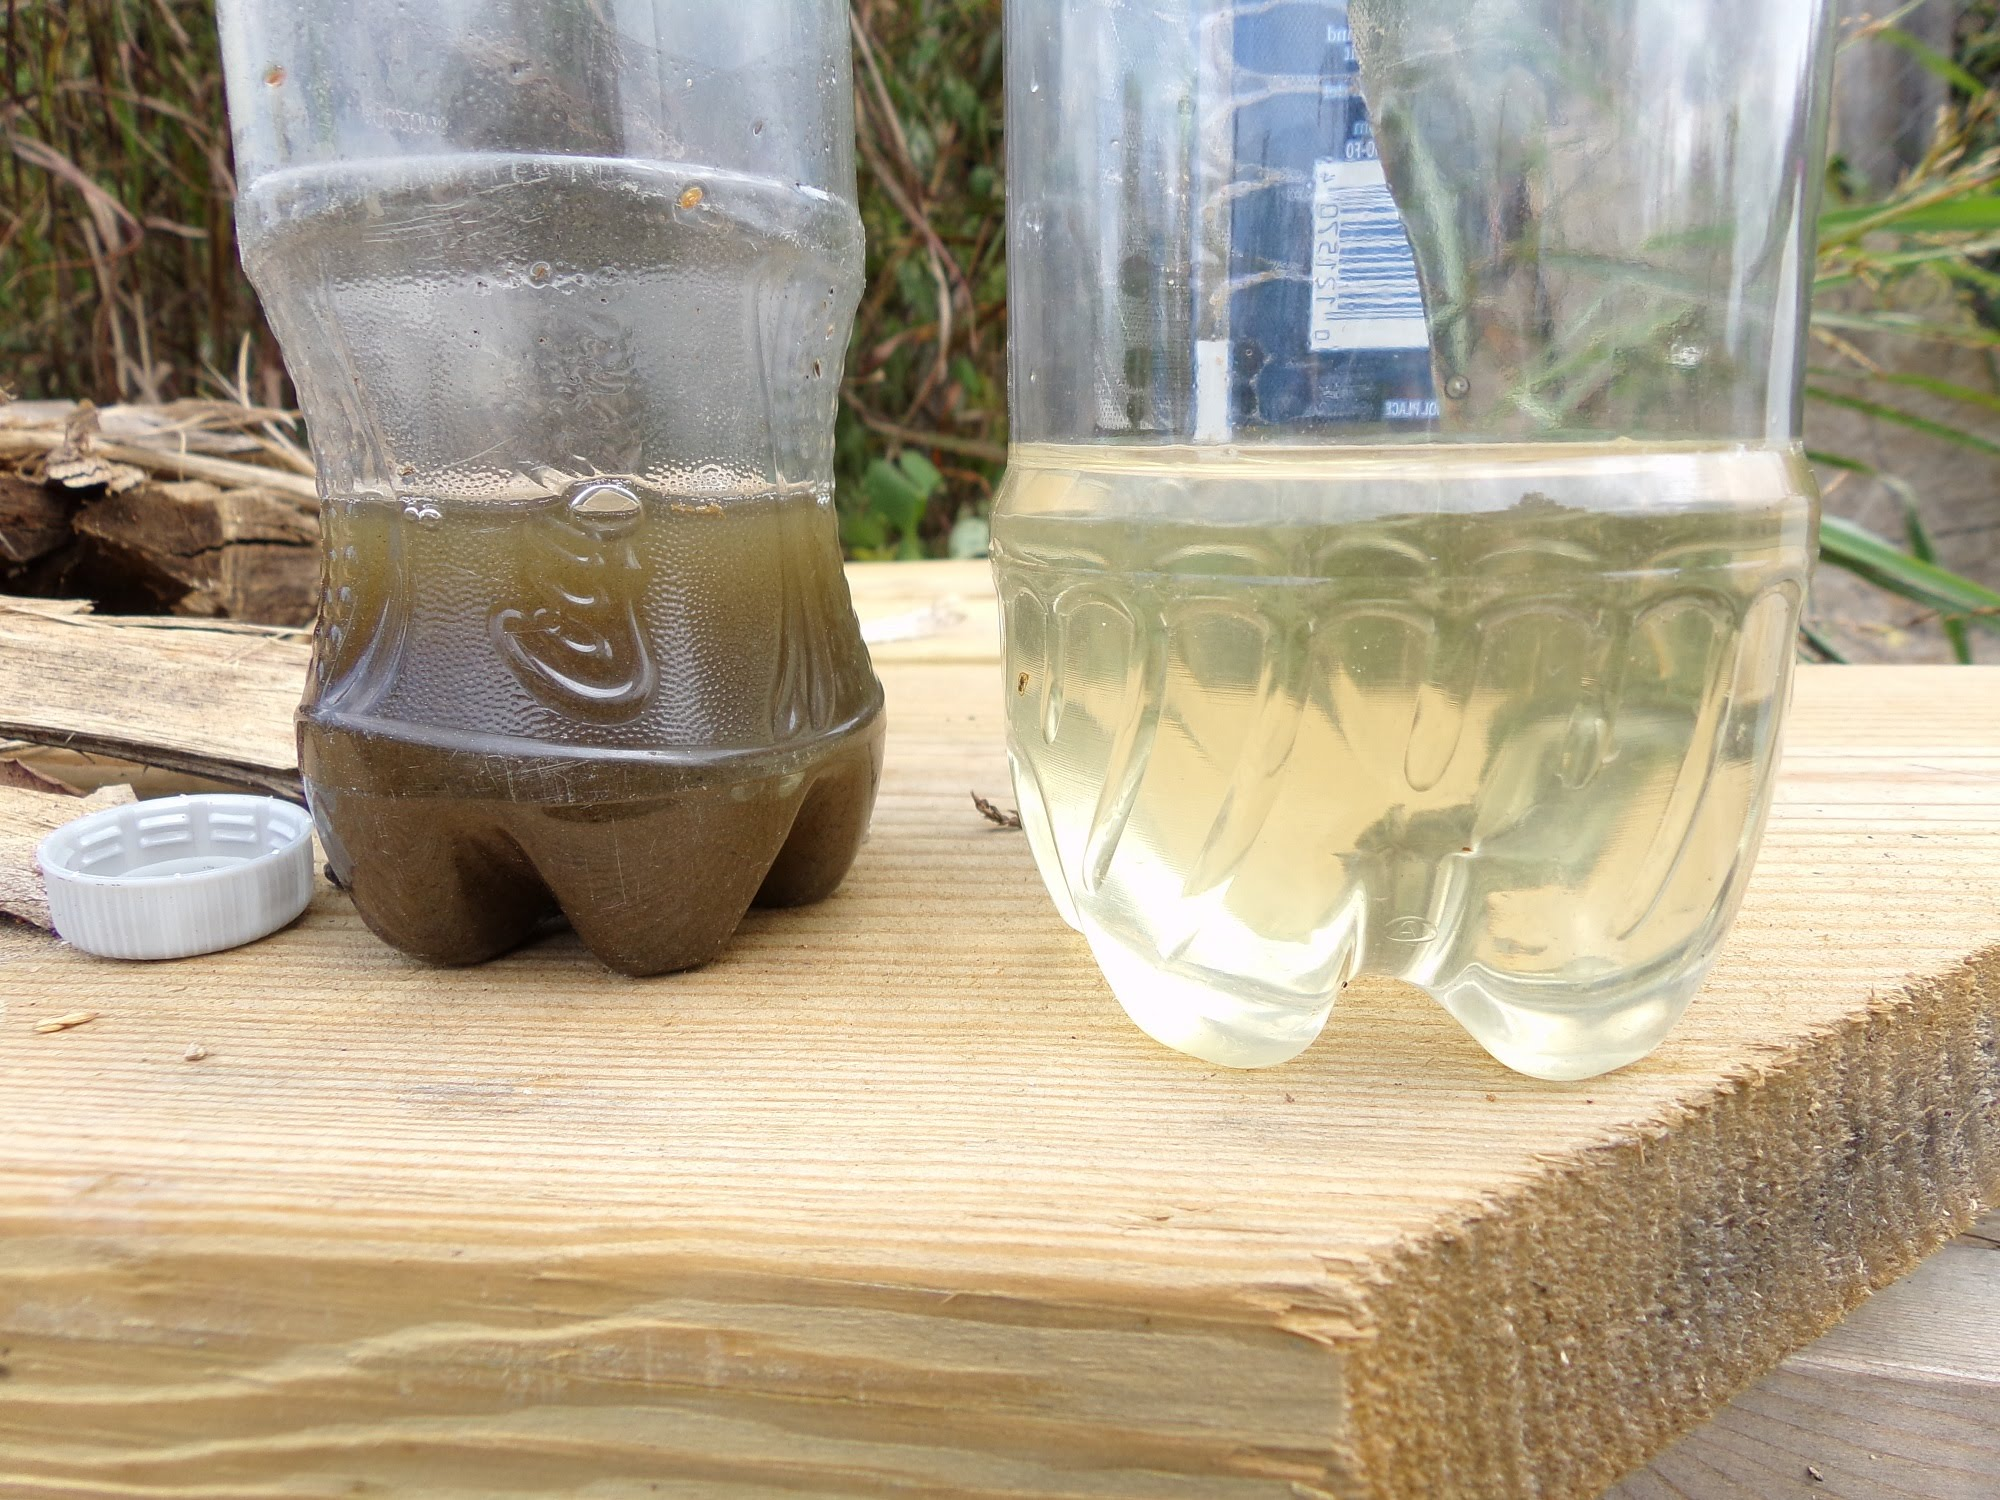 How To Make A Water Filter 22